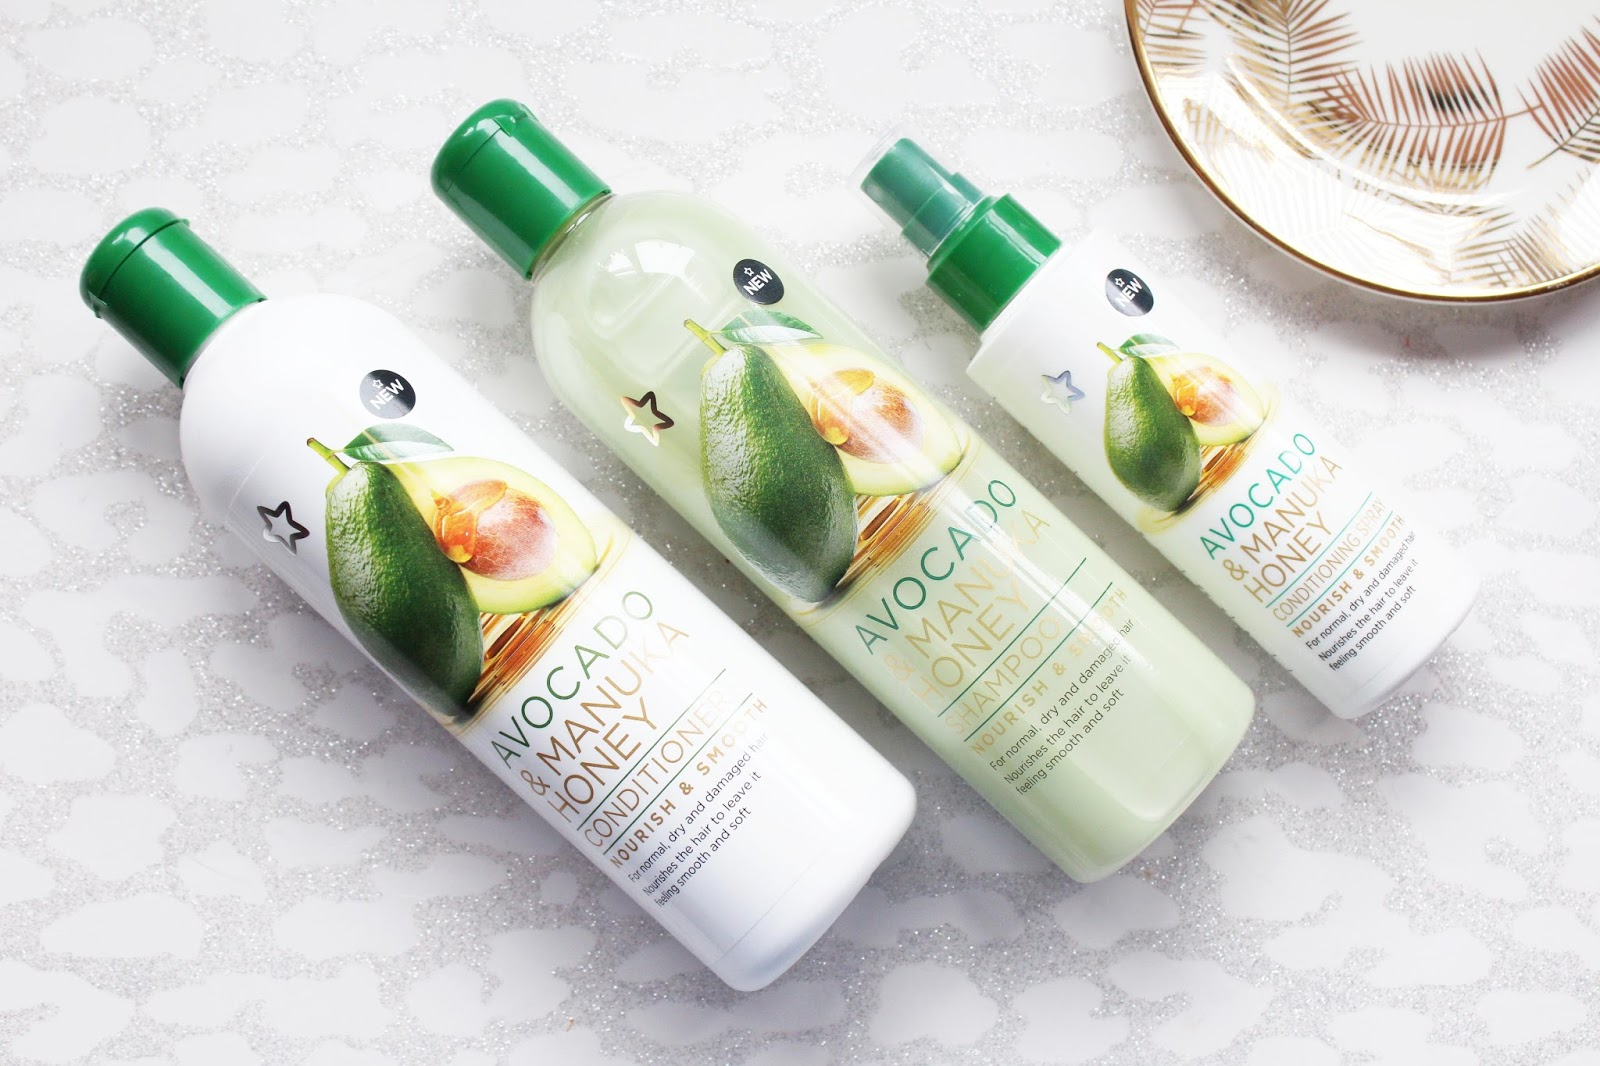 Superdrug Avocado & Manuka Honey Hair Care